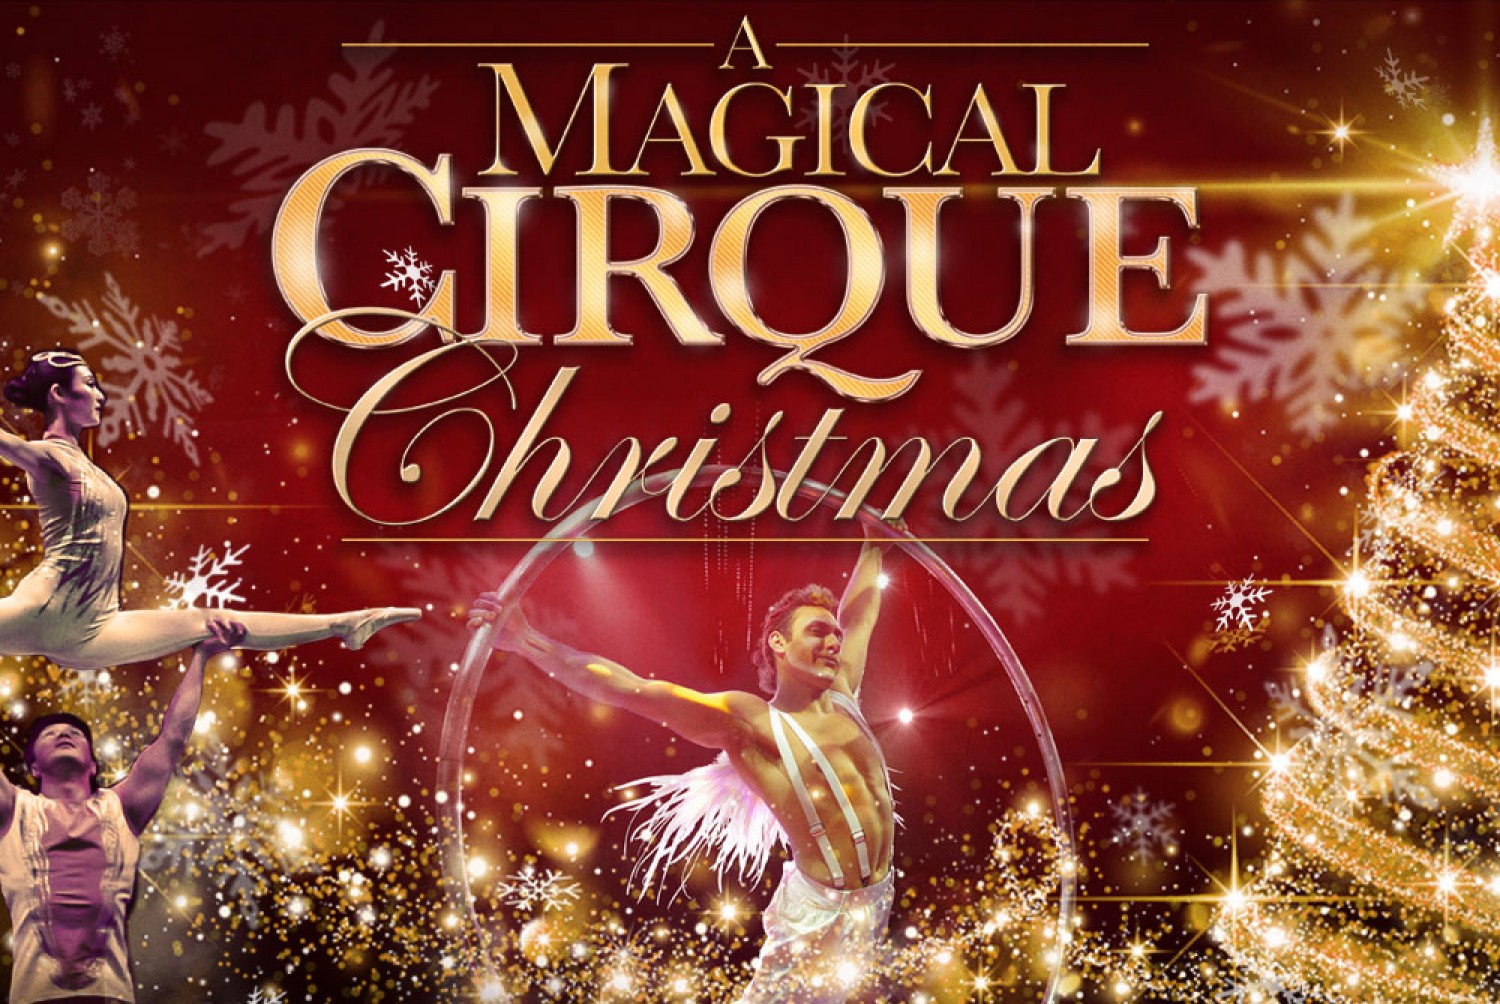 A Magical Cirque Christmas | December 8 | EKUCenter.com